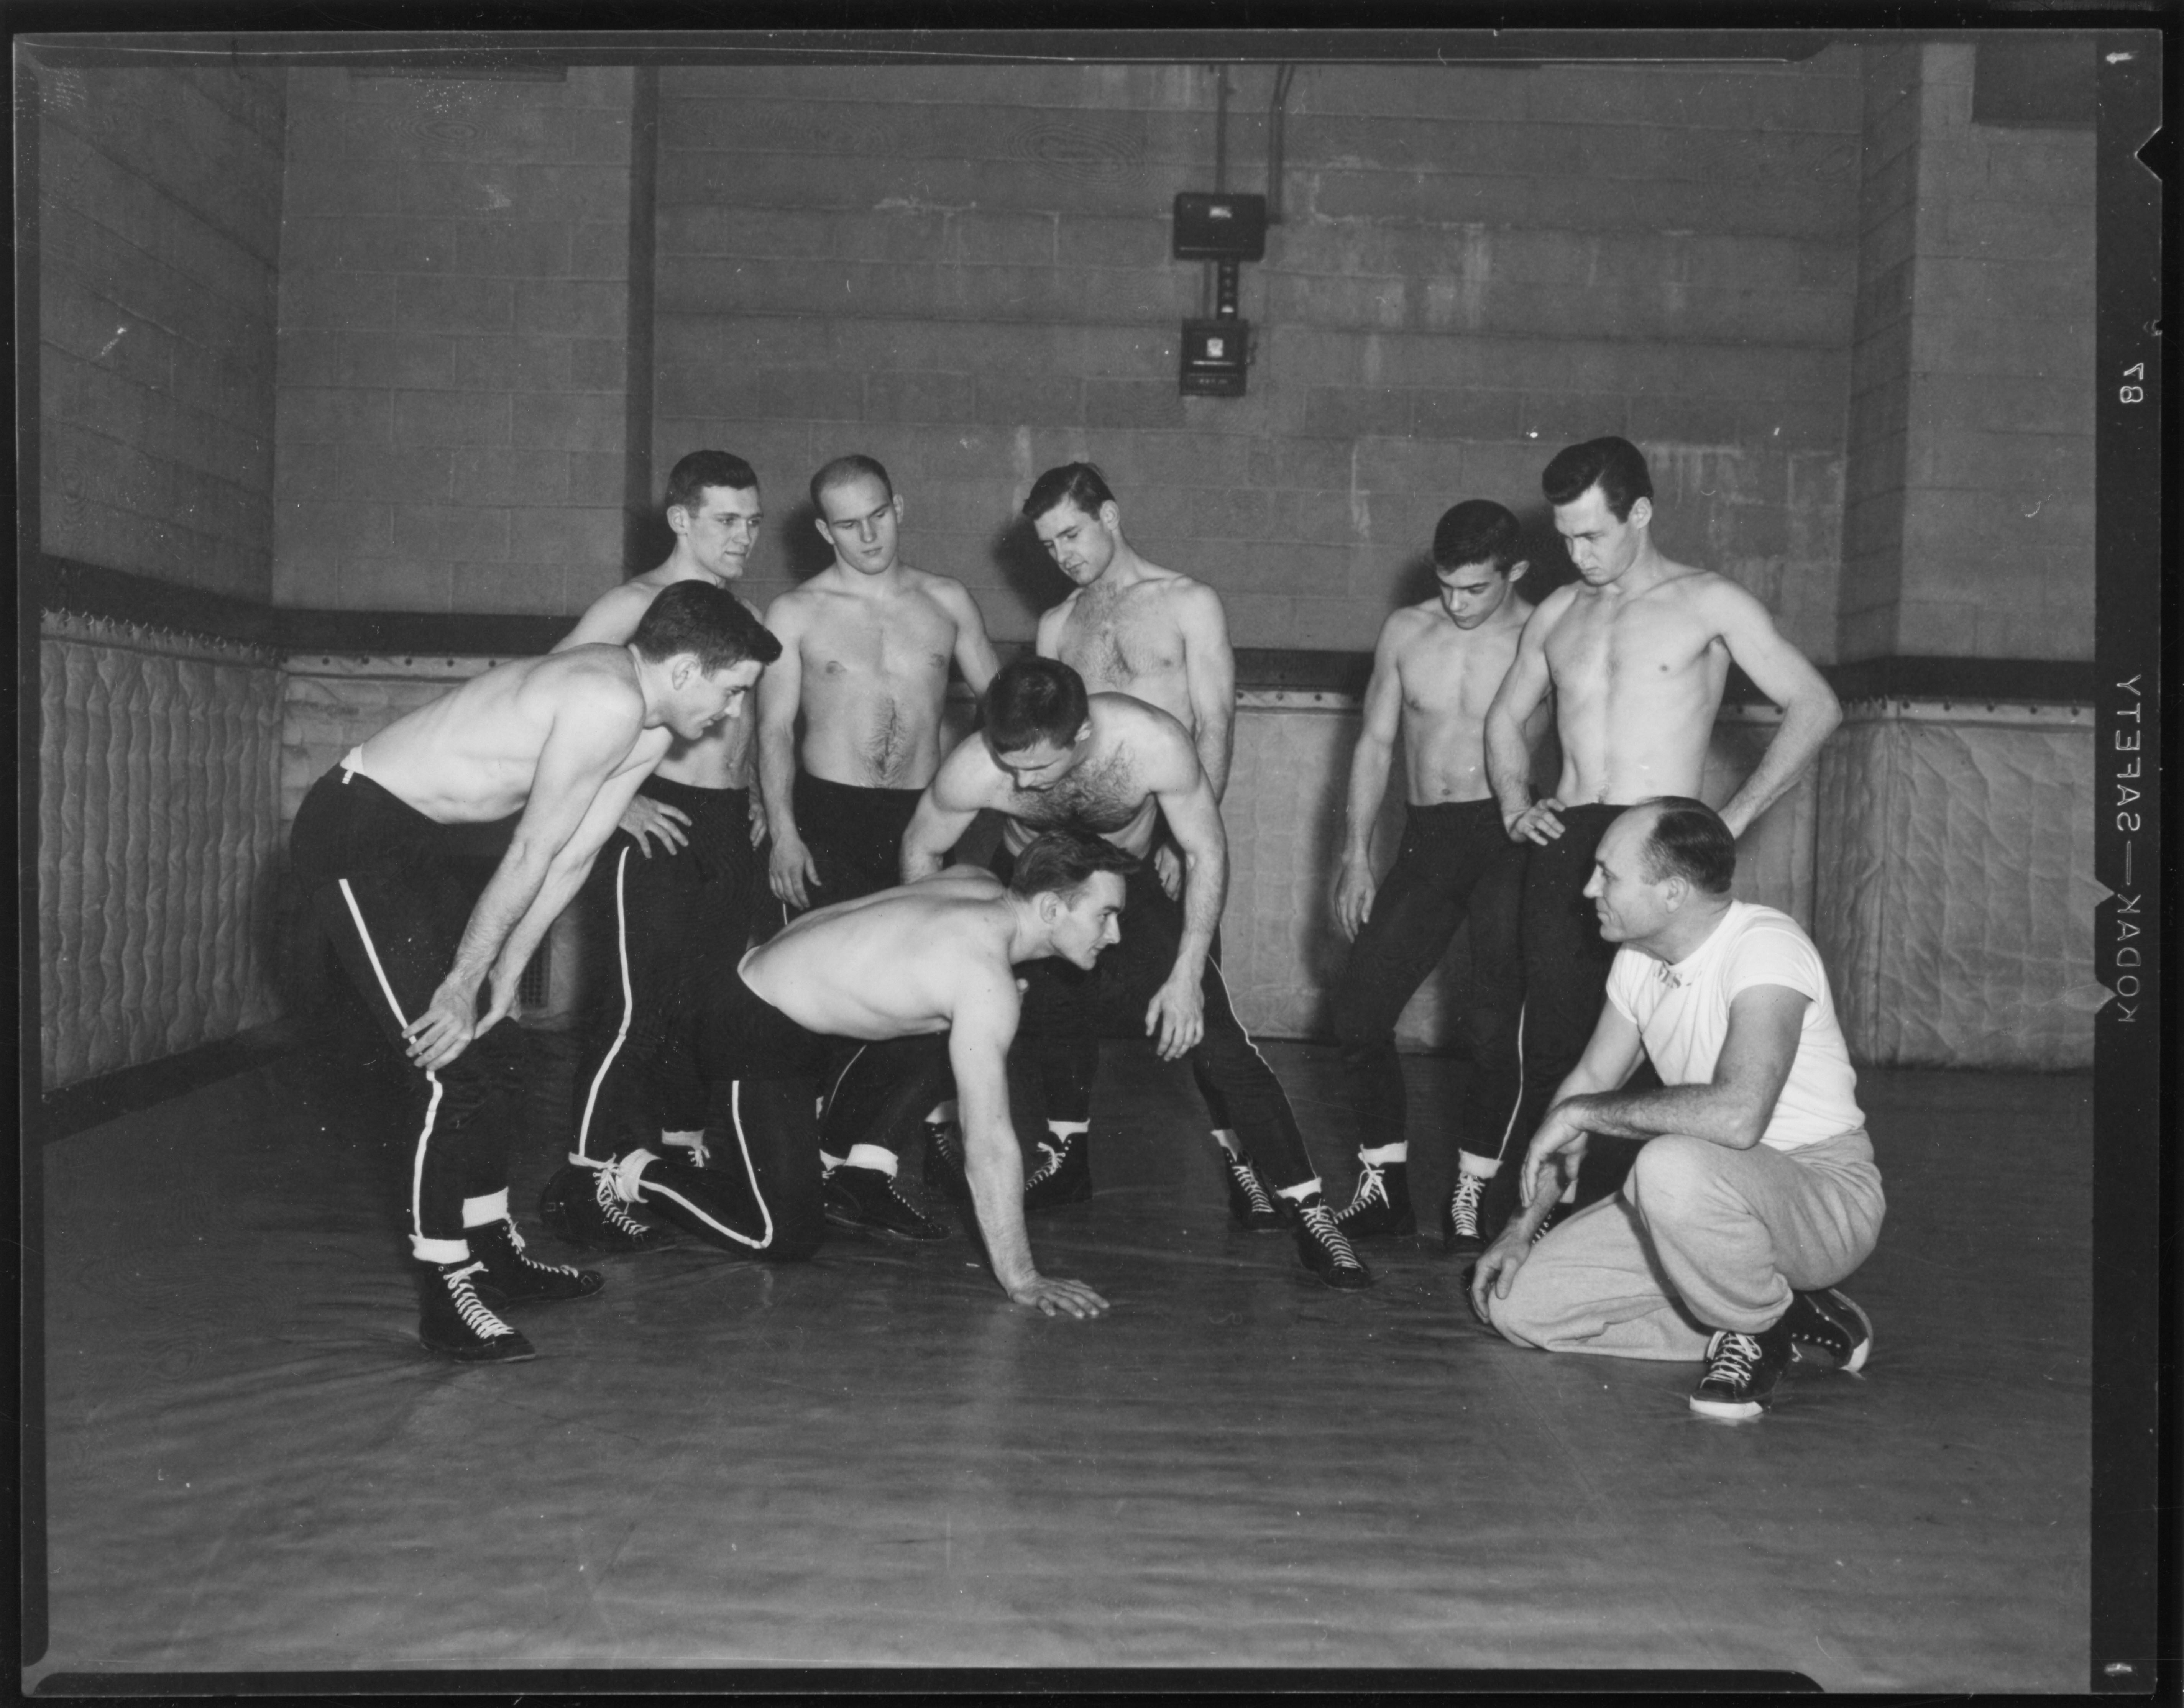 F.Collins and Wrestlers,1950